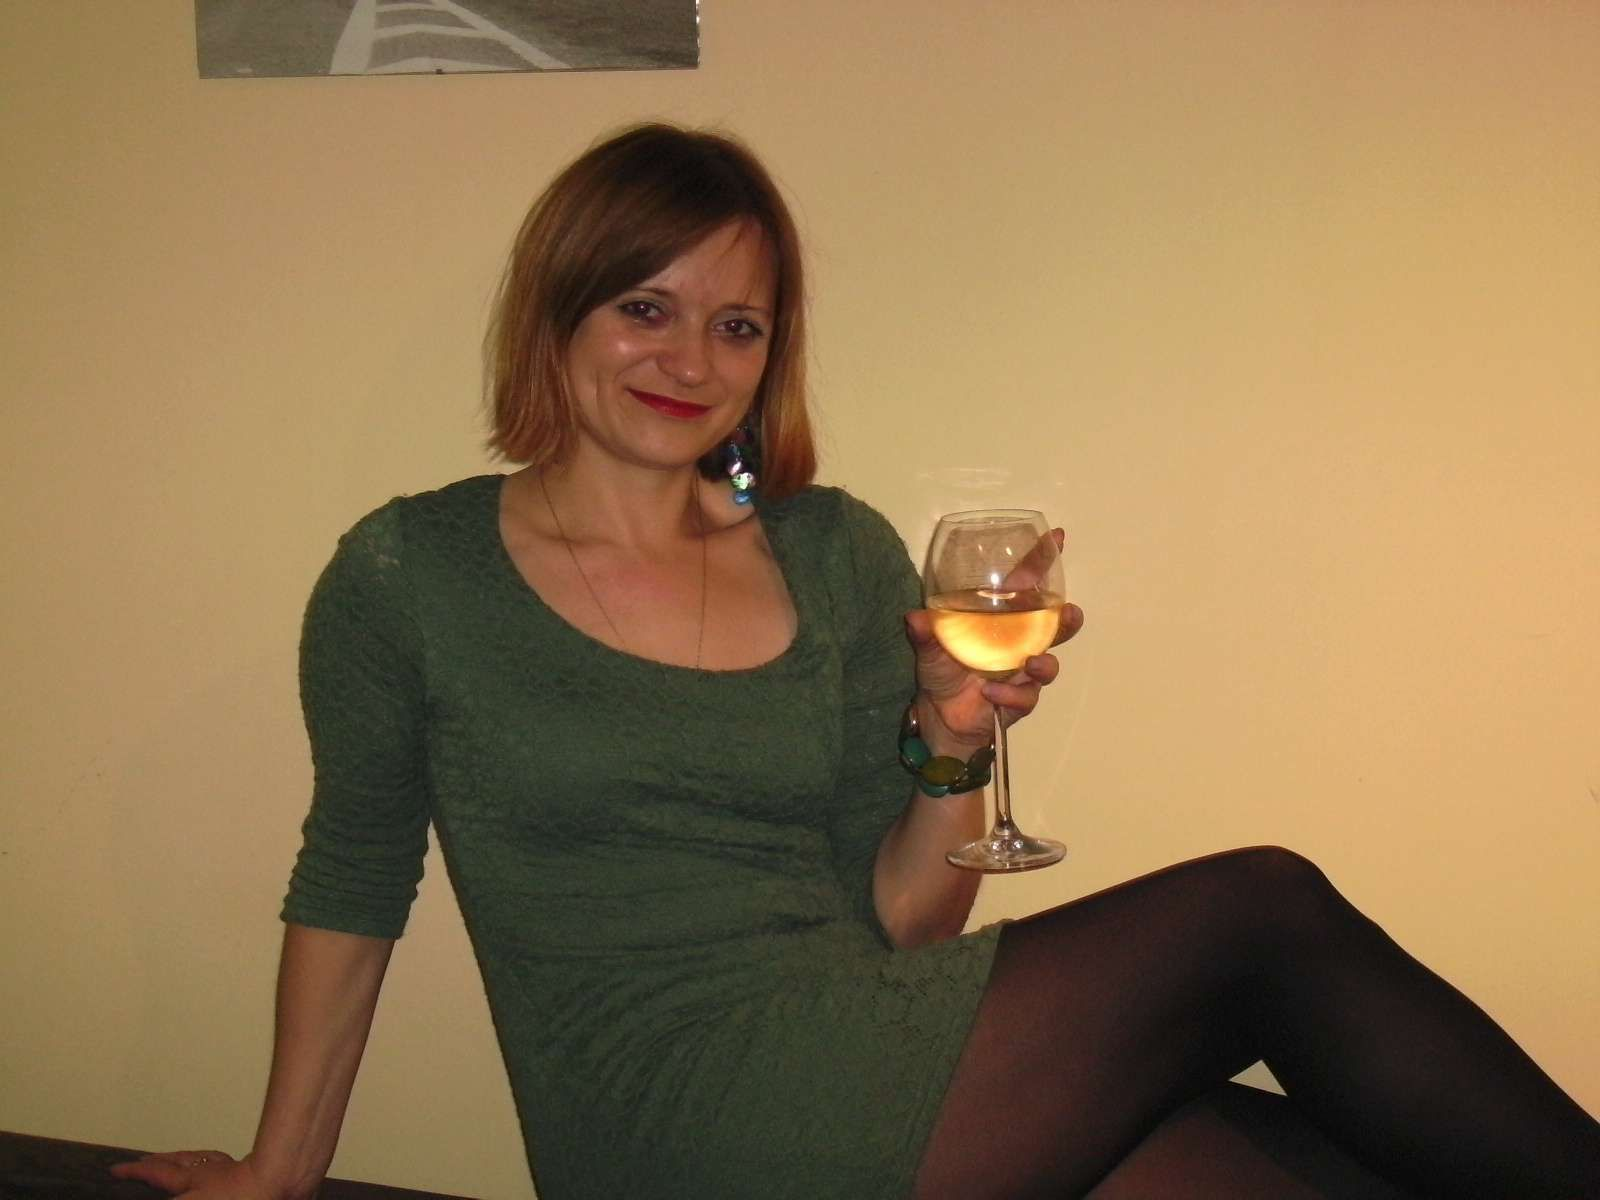 guelph single personals Guelph's best free dating site 100% free online dating for guelph singles at  mingle2com our free personal ads are full of single women and men in guelph .